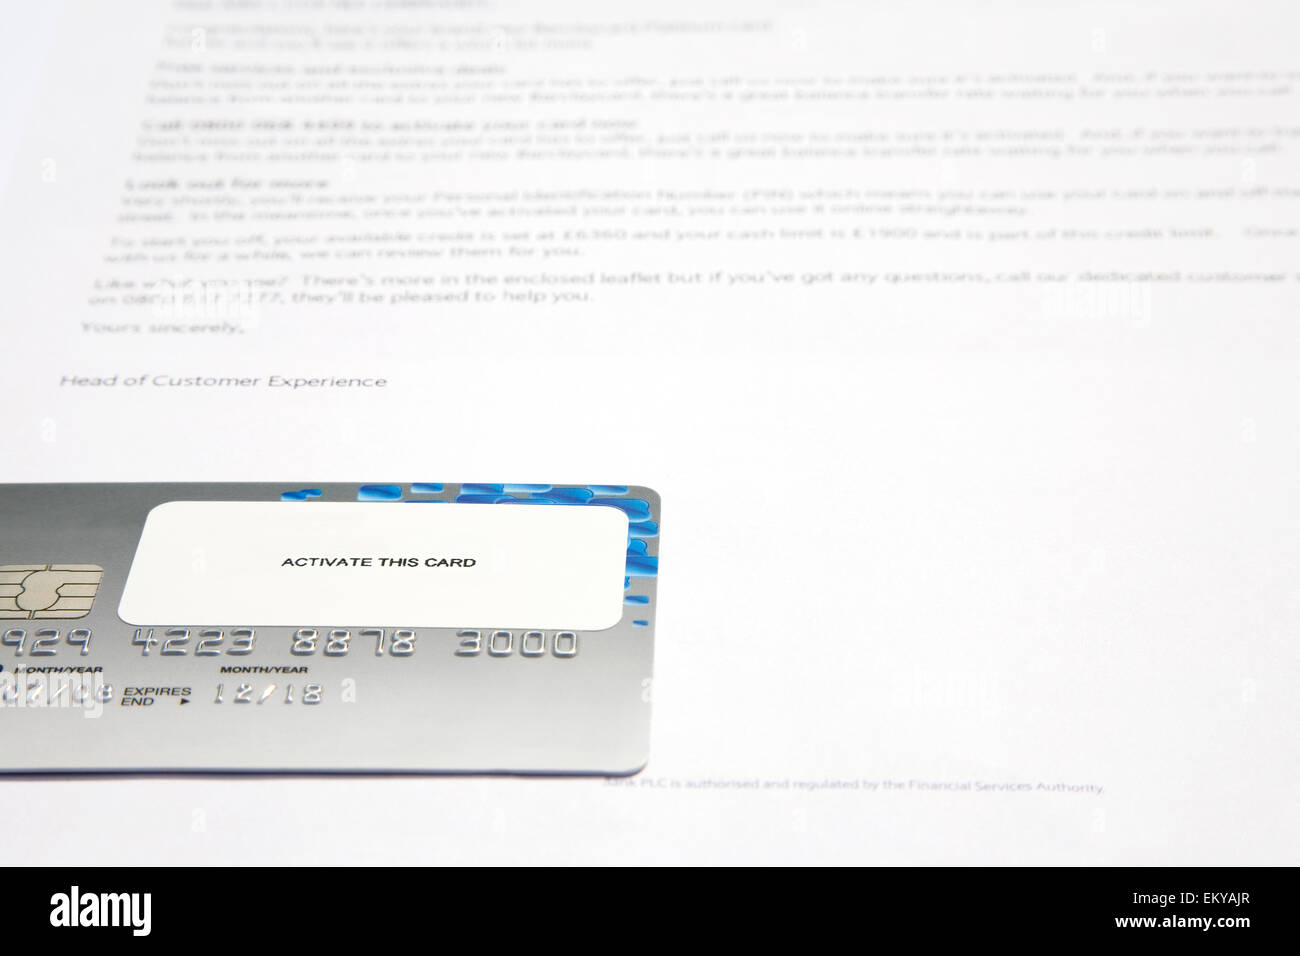 such your phone company credit card visa credit card from comerica bank enjoy credit card activation print corporate credit cards